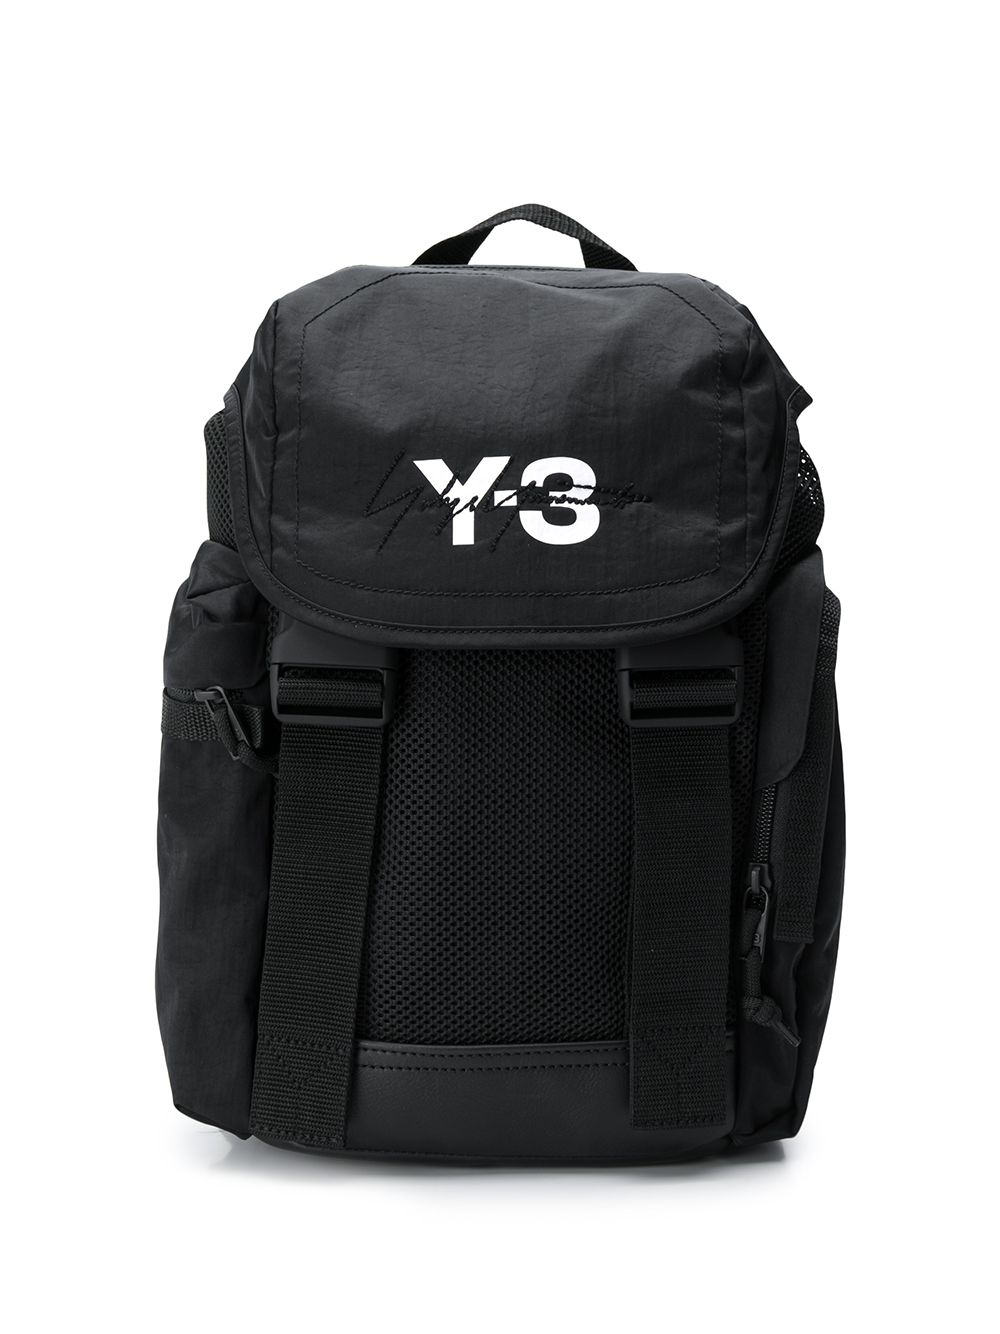 6506d7c2b41a7 Y-3 Black Mobility Logo Print Backpack